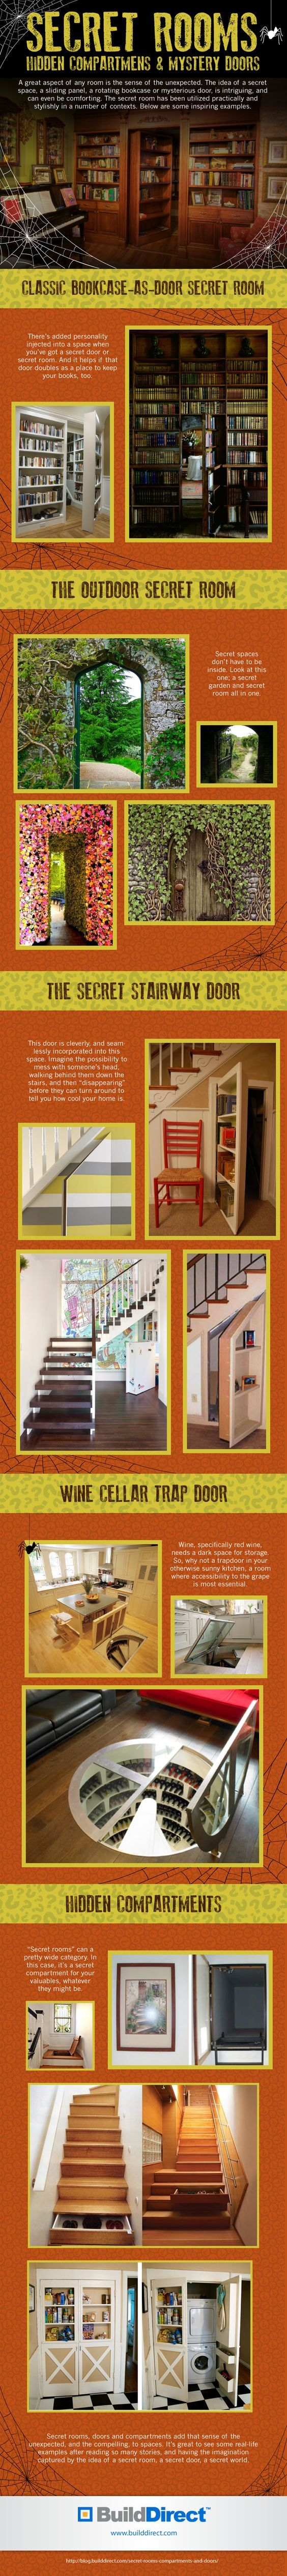 Best 25 Hidden partments ideas on Pinterest